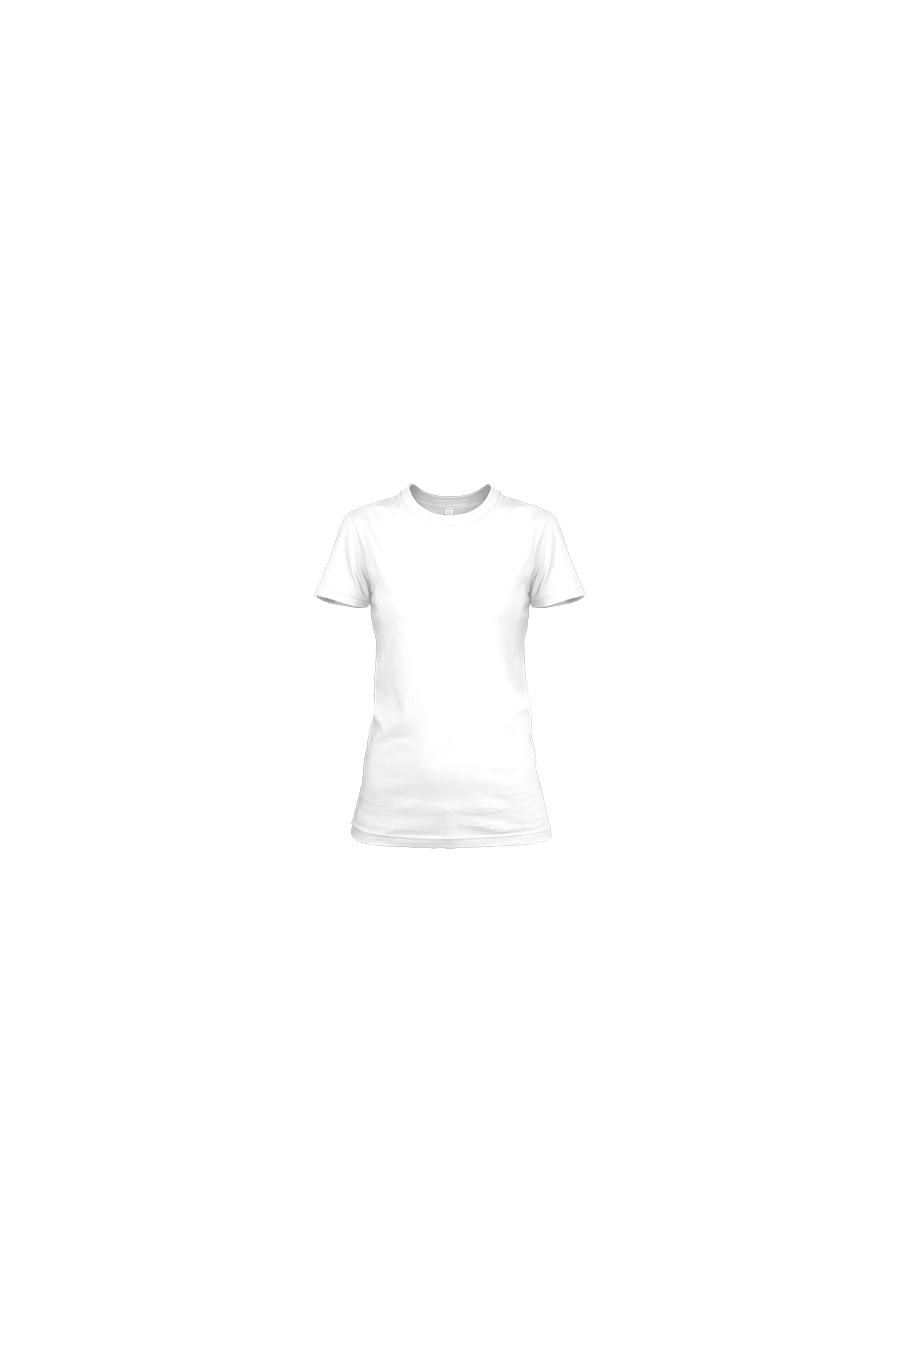 Ladies Heavy Cotton Short Sleeve T-Shirt